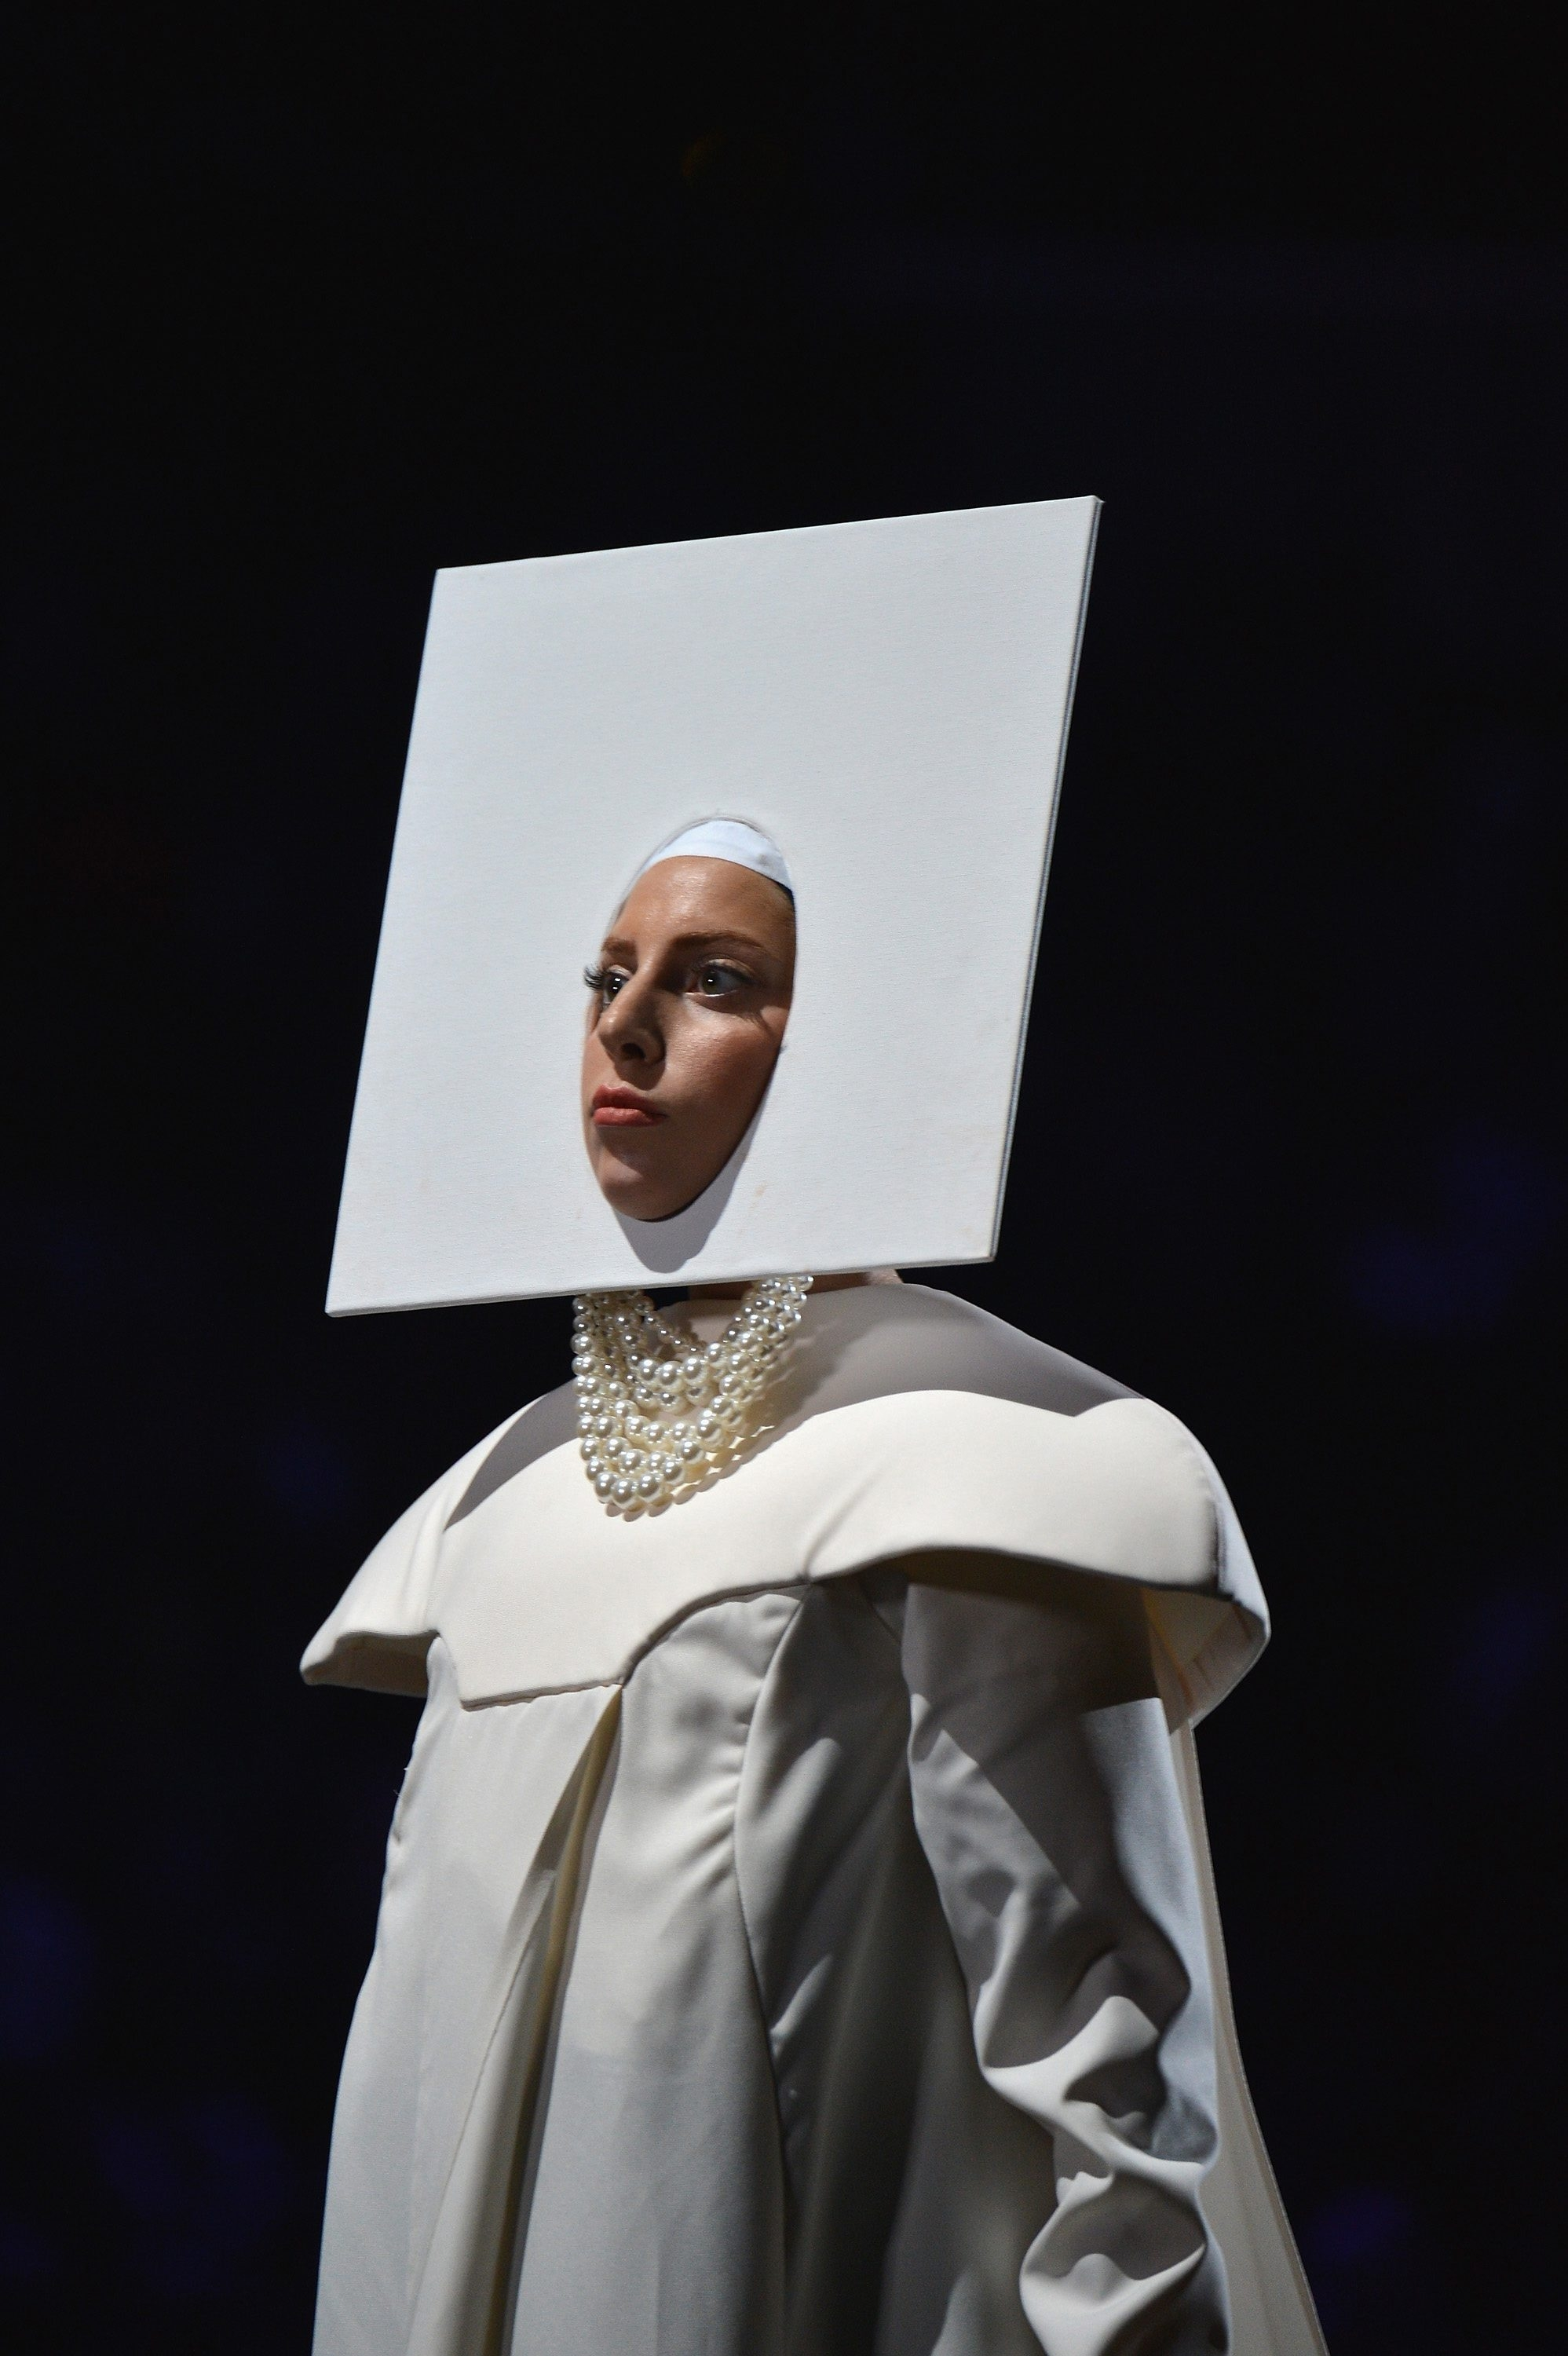 Borrow an idea from Lady Gaga's getup during the 2013 MTV Video Music Awards.